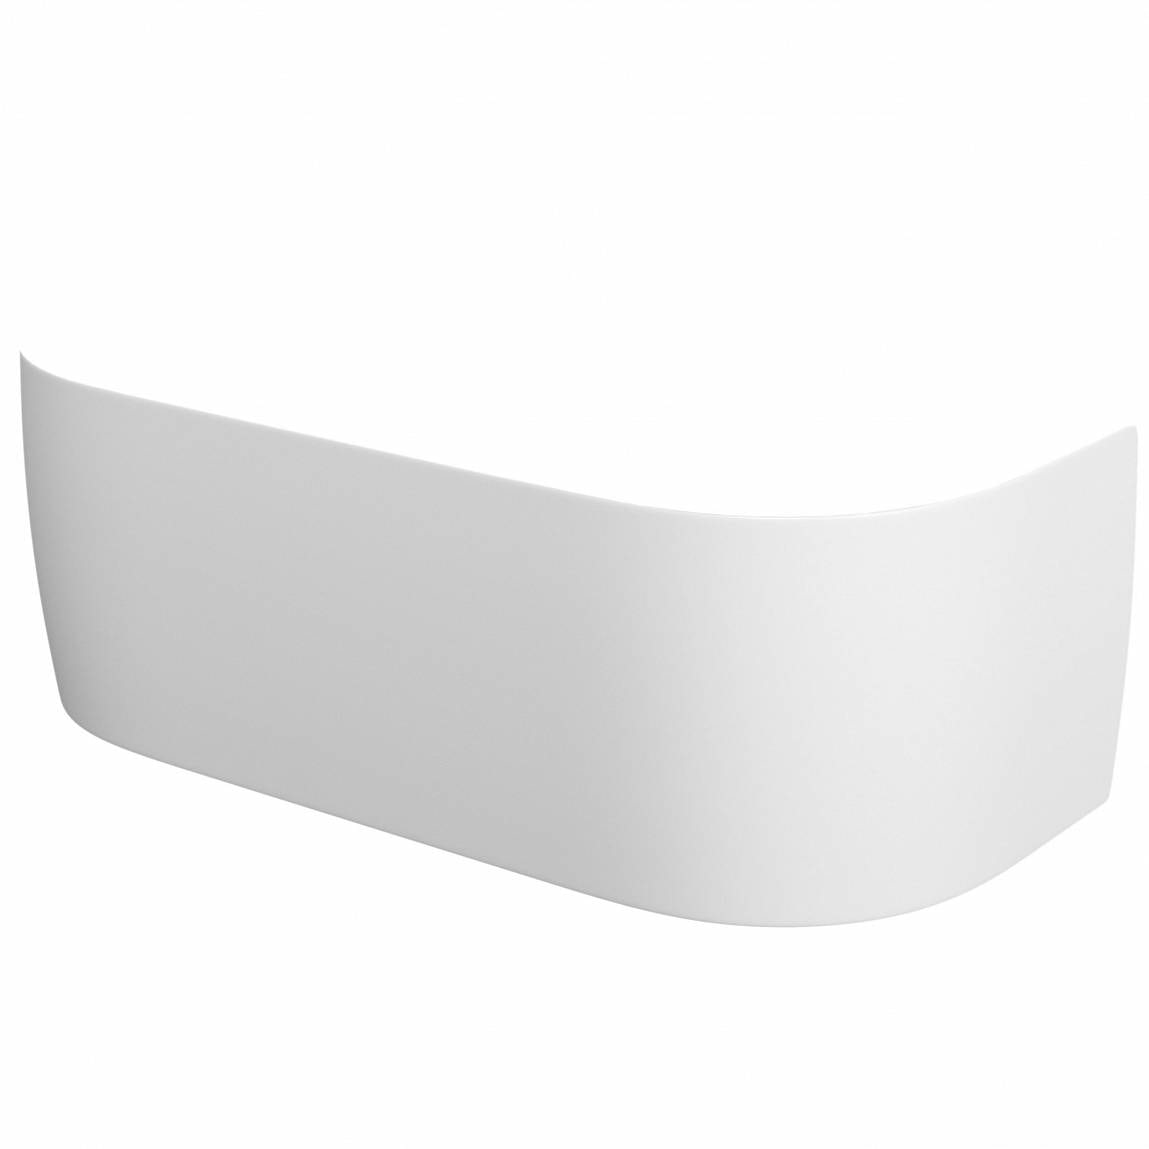 Orchard Elsdon D shaped double ended back to wall bath panel